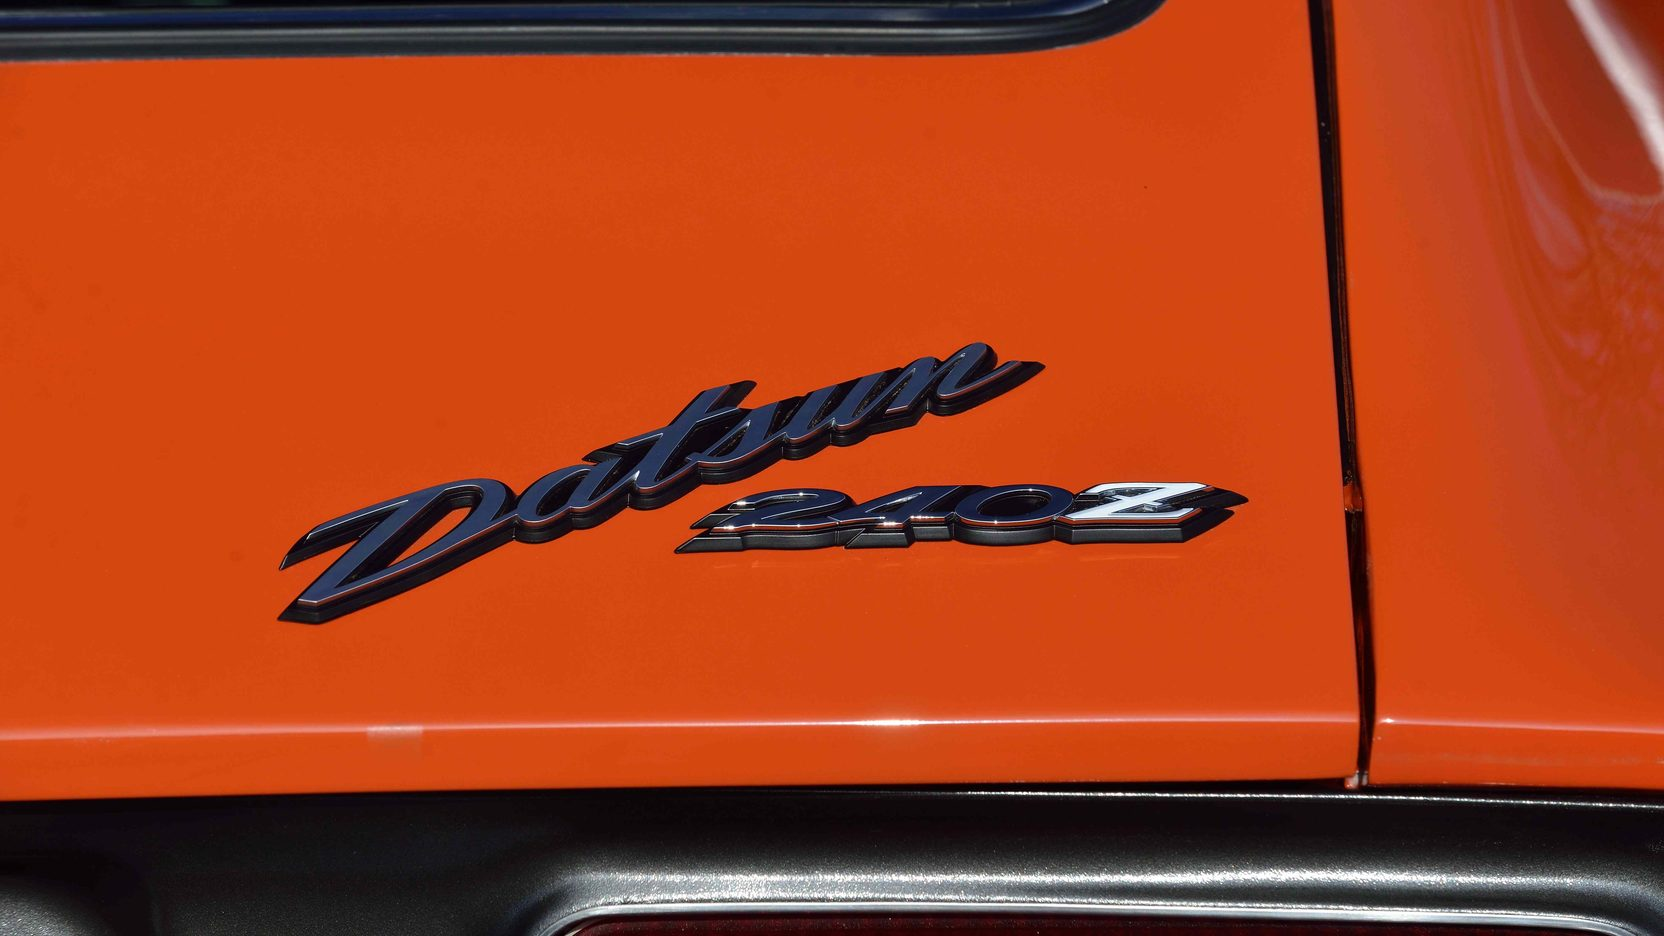 1973 Datsun 240Z badge